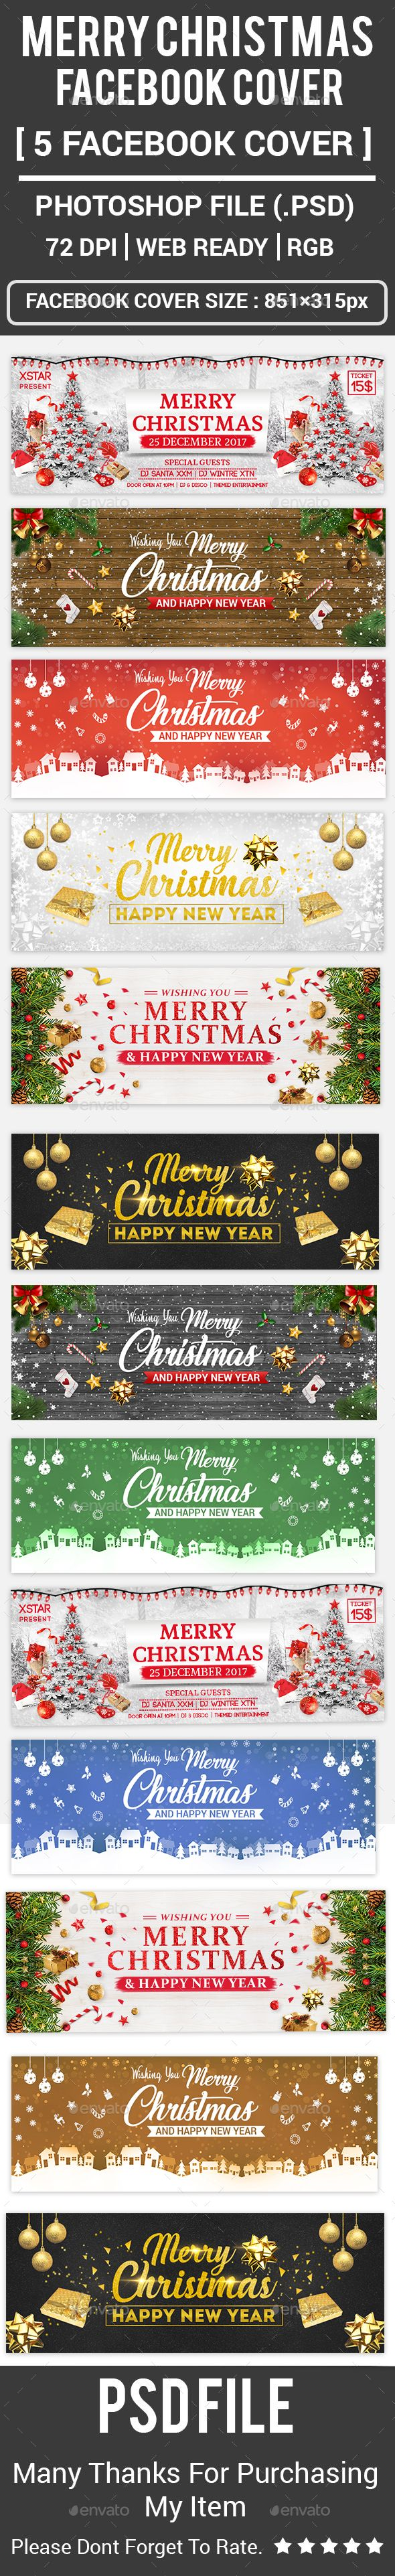 Merry Christmas #Facebook Covers - Facebook Timeline Covers #Social Media